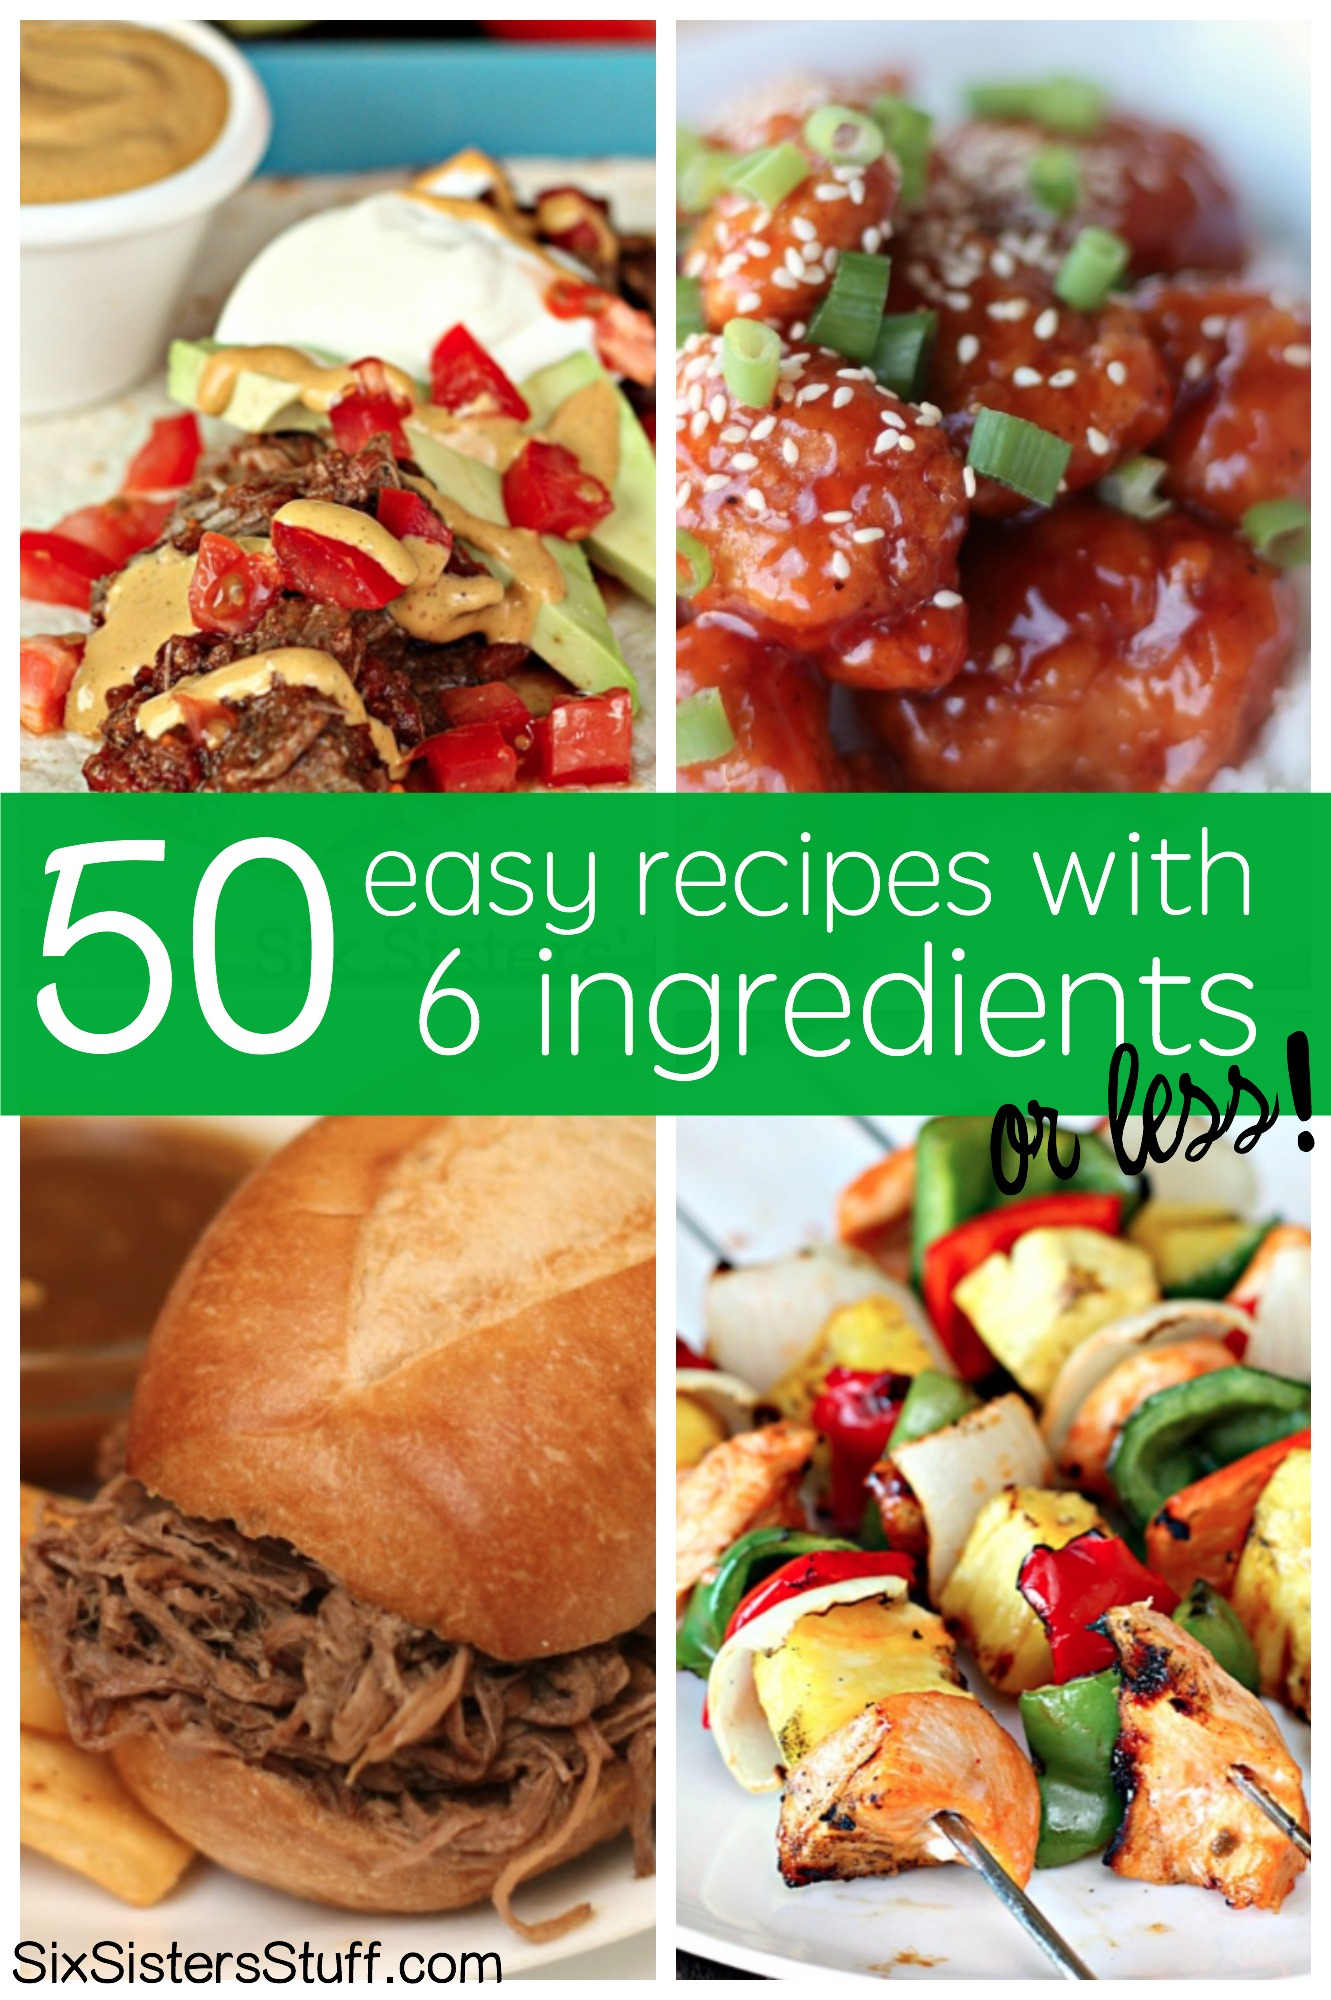 50 Easy Recipes with less than 6 ingredients on SixSistersStuff.com